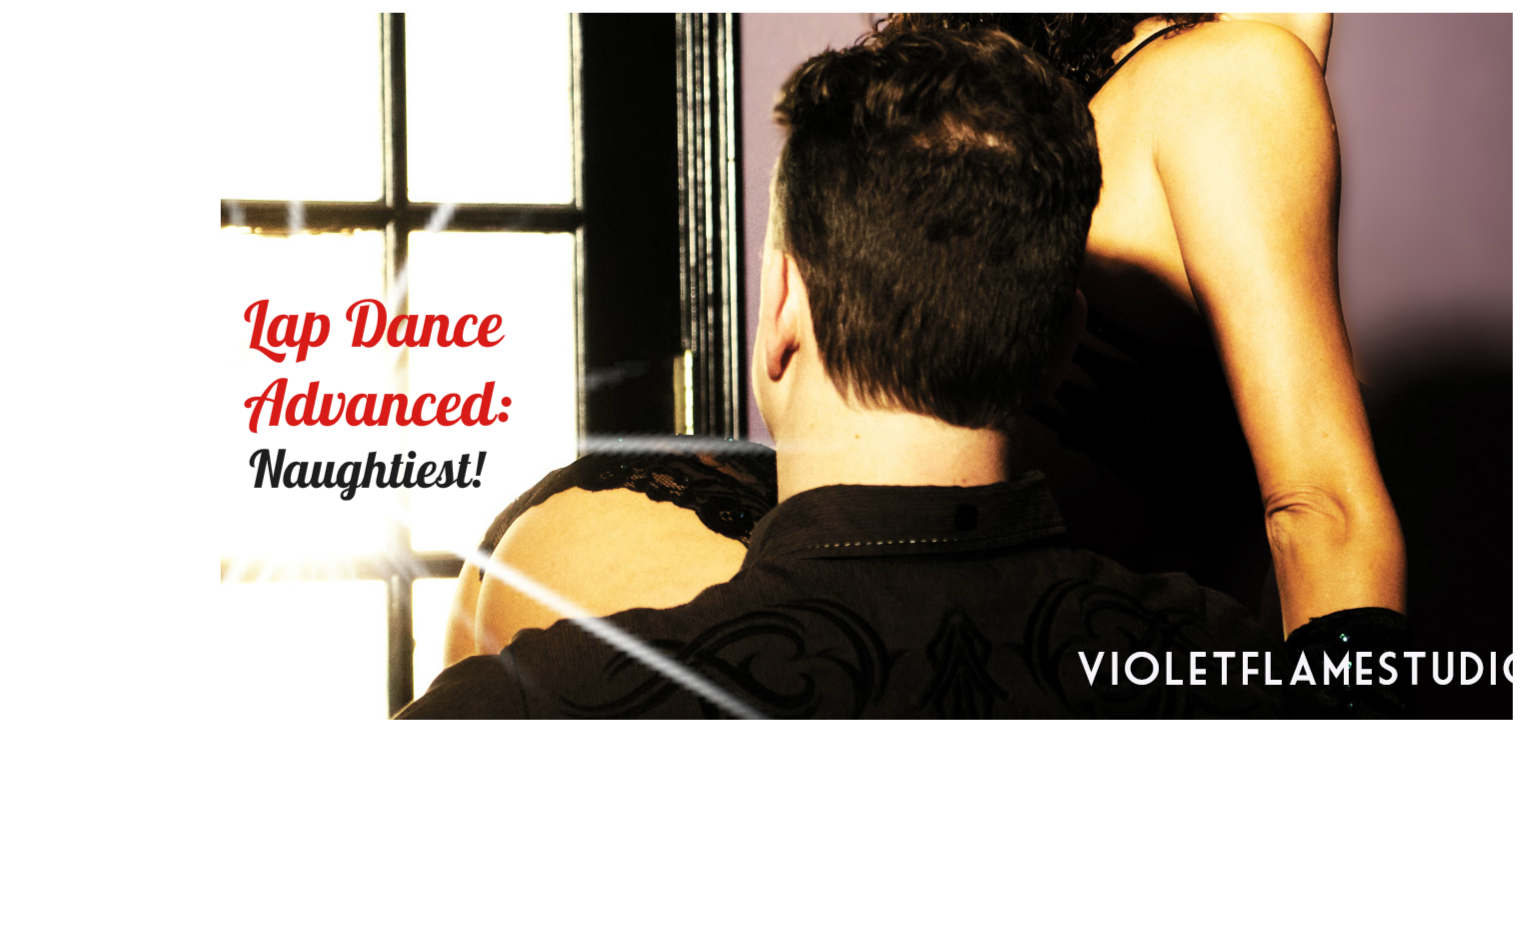 Lap Dance Advanced - Wednesday October 9th7:30-9:00pm